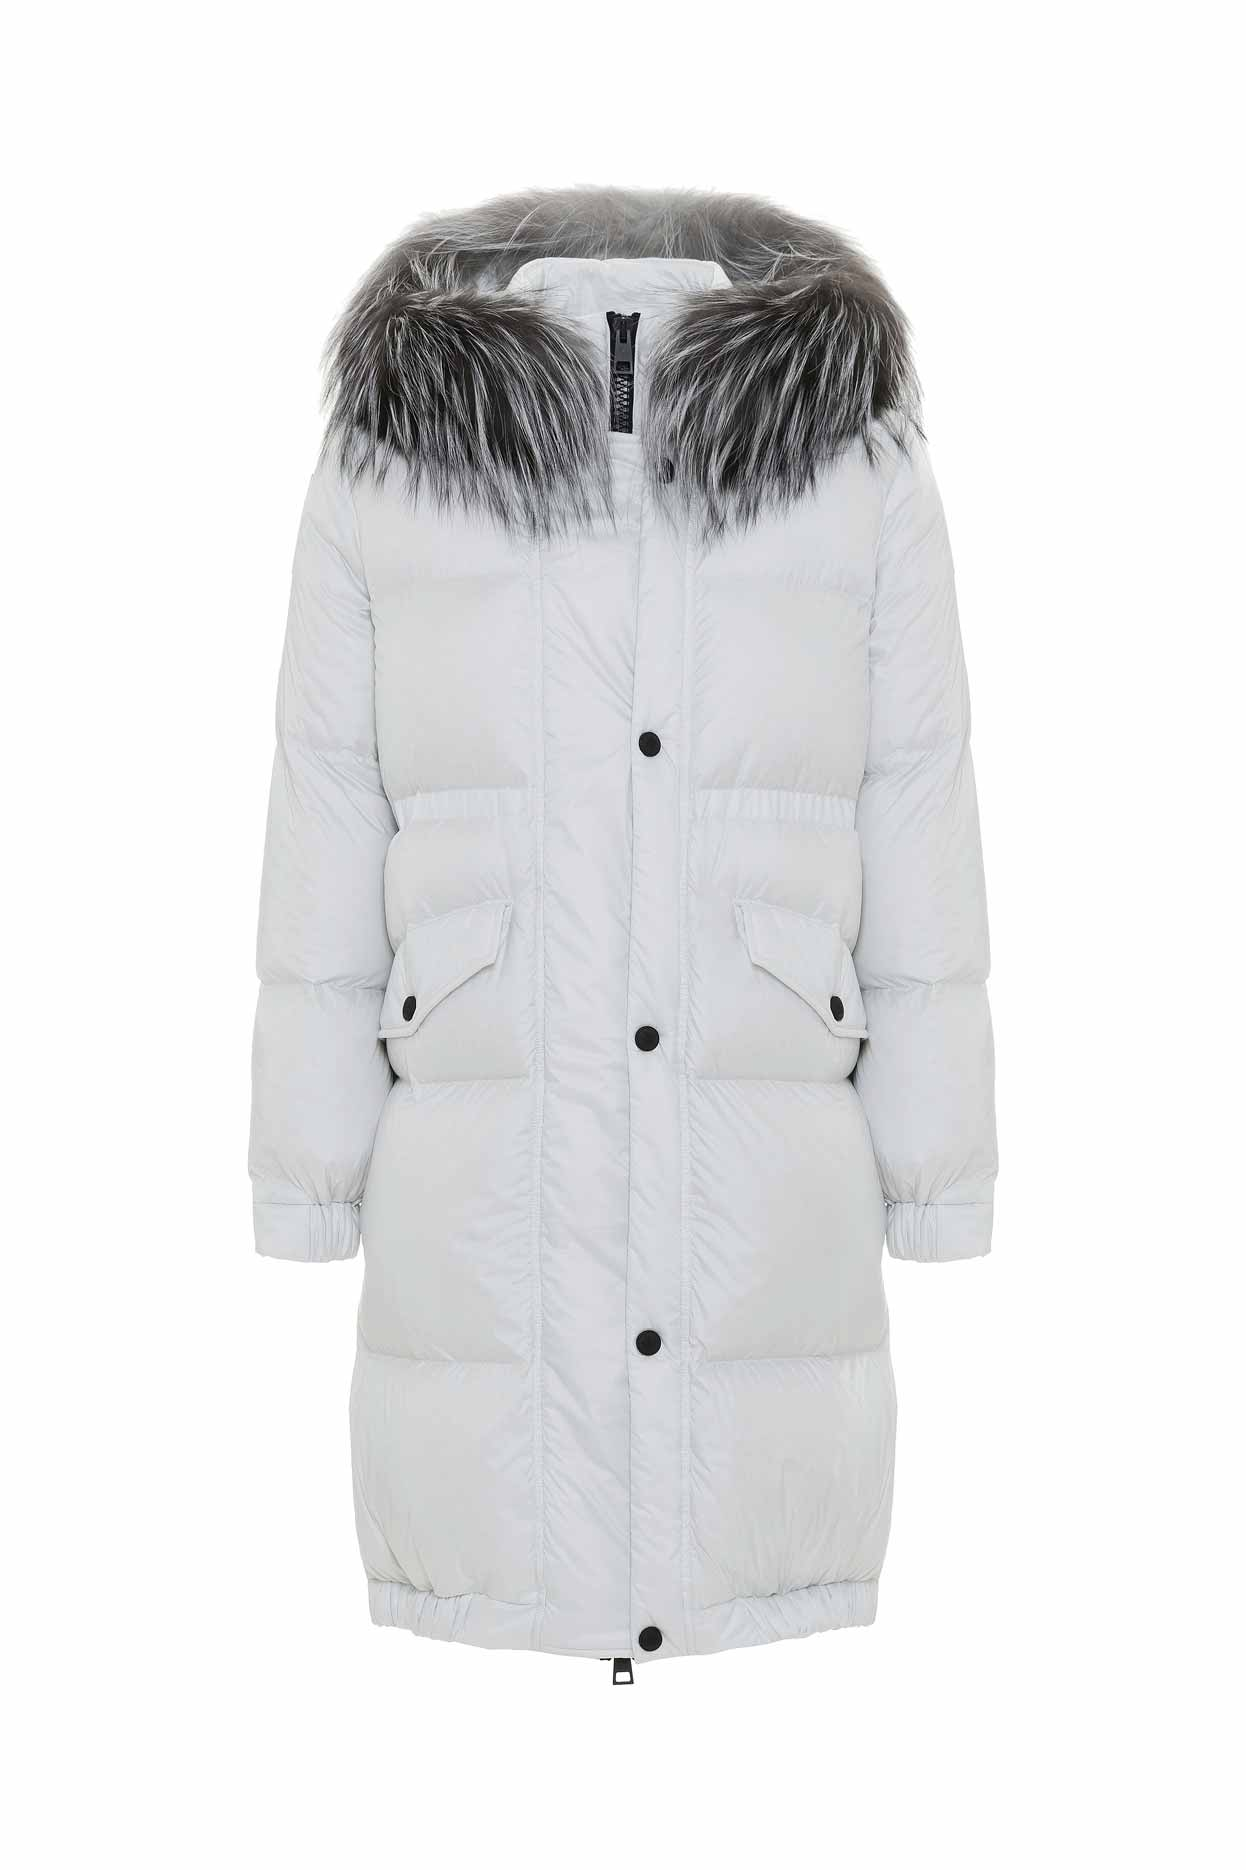 Mr & Mrs Italy Long Down Jacket For Woman With Fox Fur In Sail White / Sail White / Silver